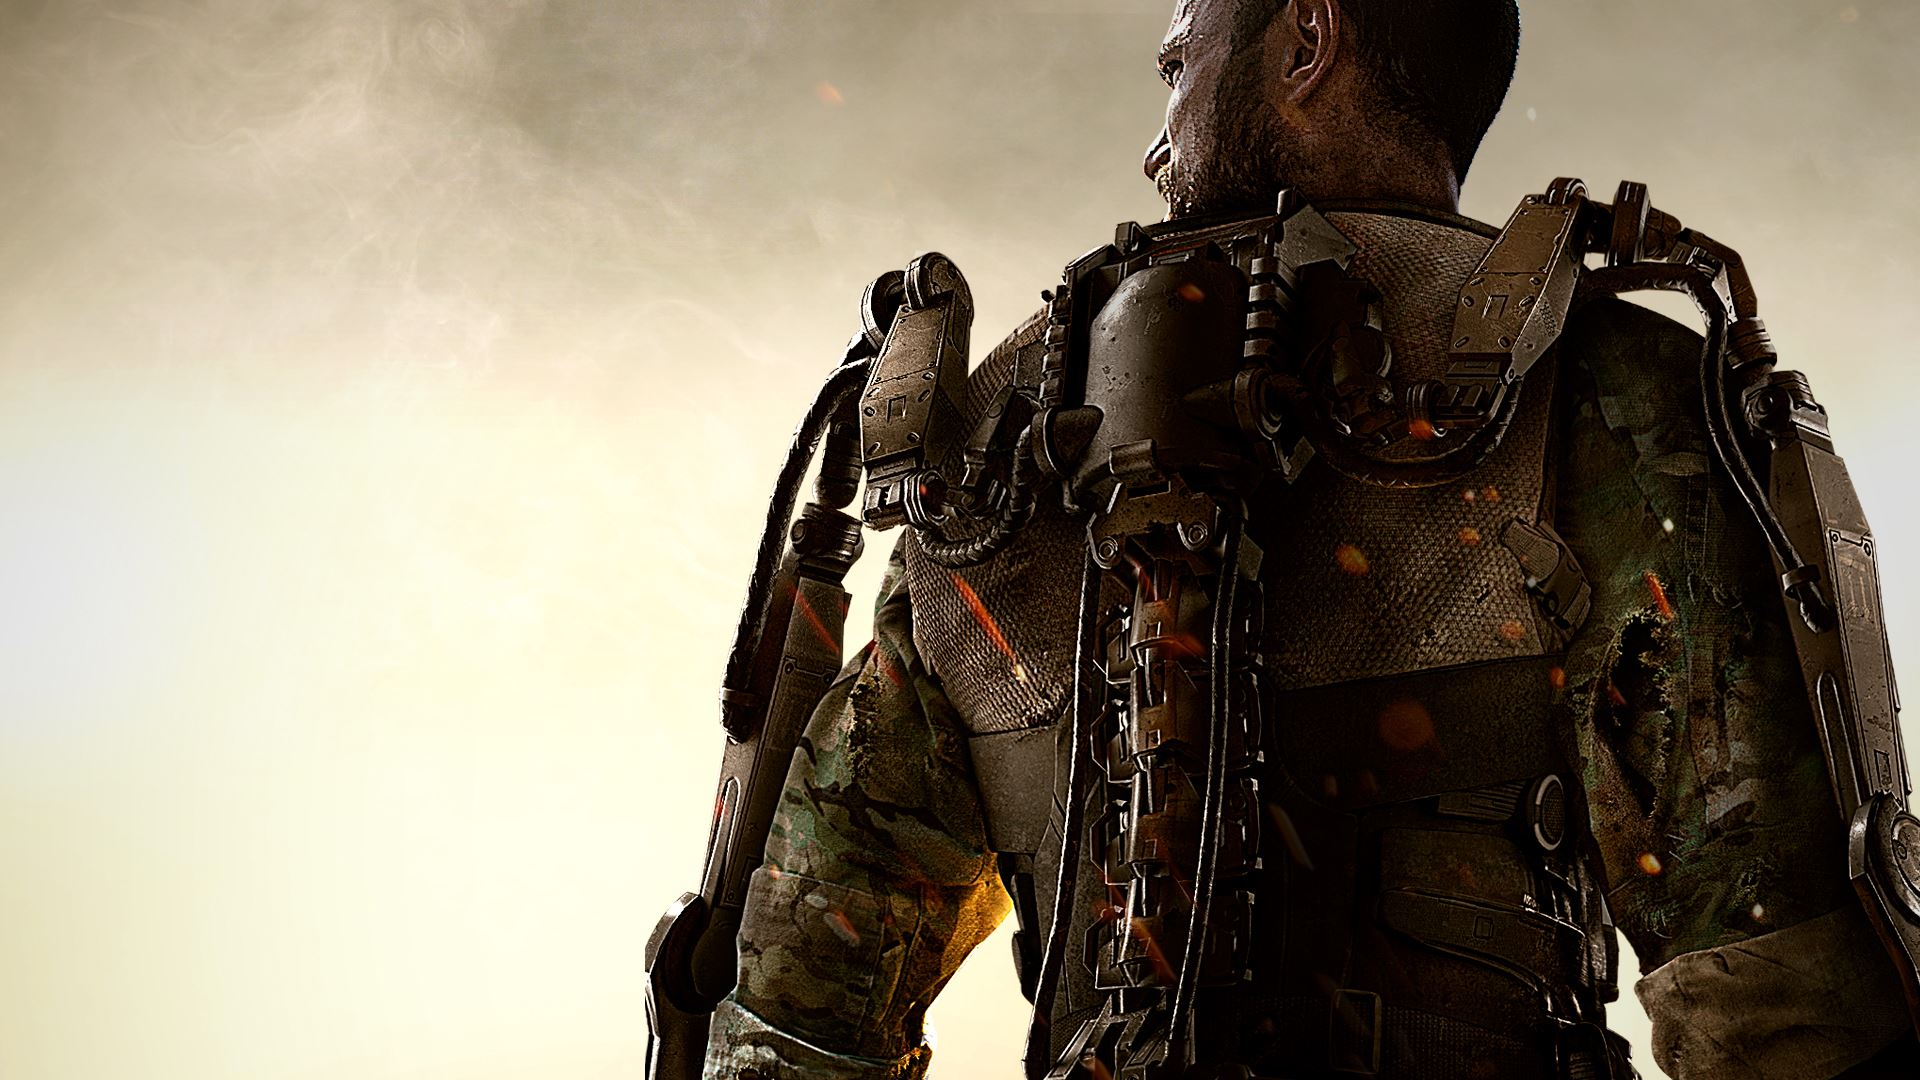 CALL OF DUTY ADVANCED WARFARE XBOX UPDATES - Activision Community